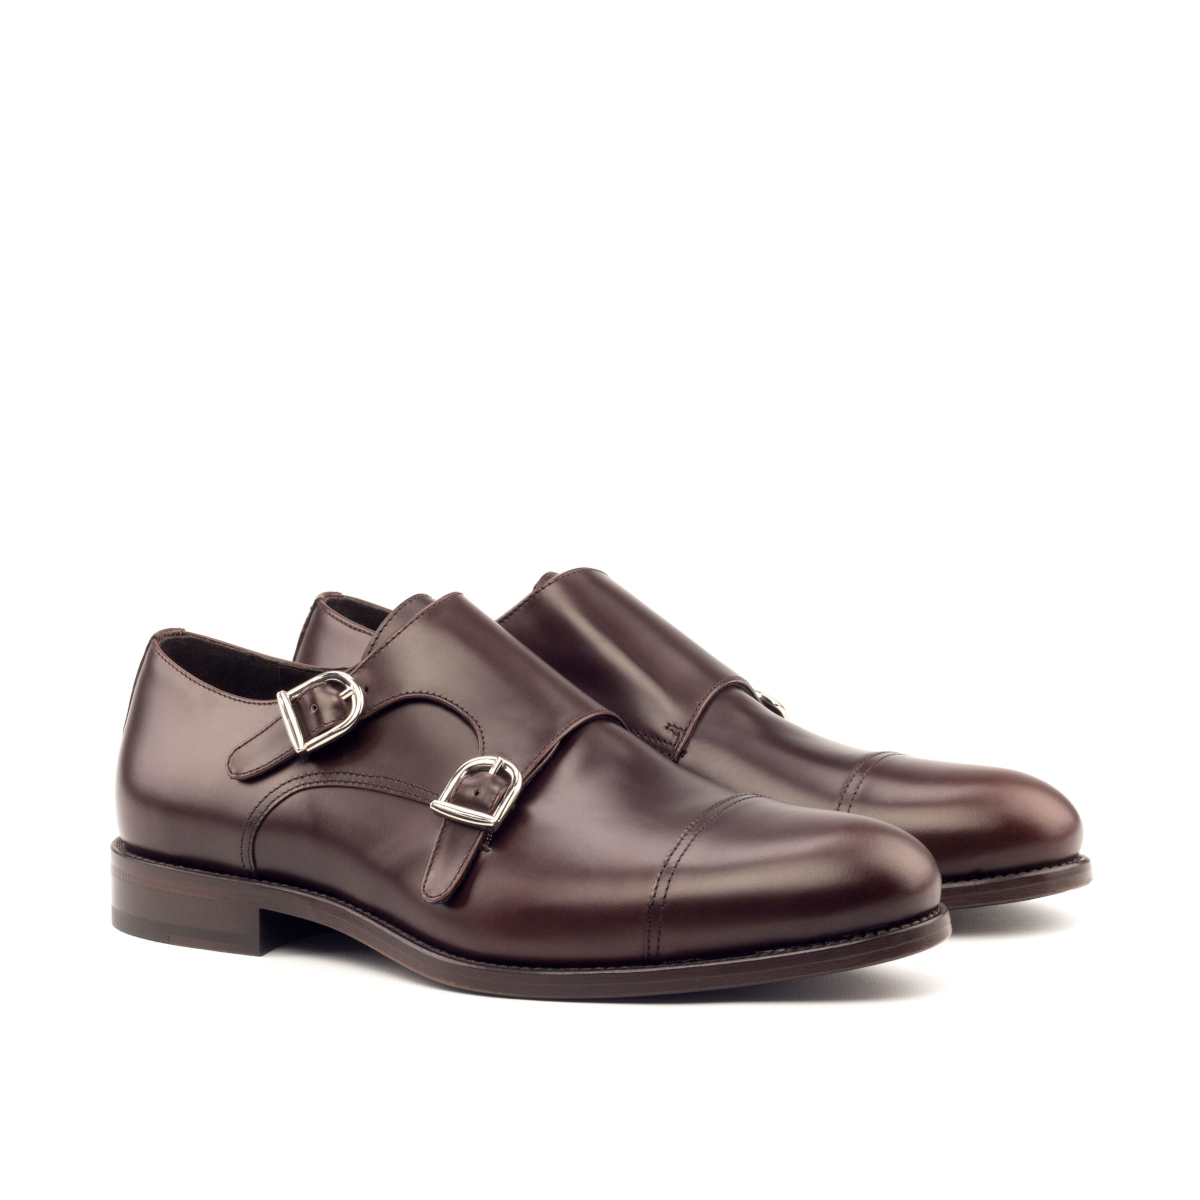 Chocolate double monk strap